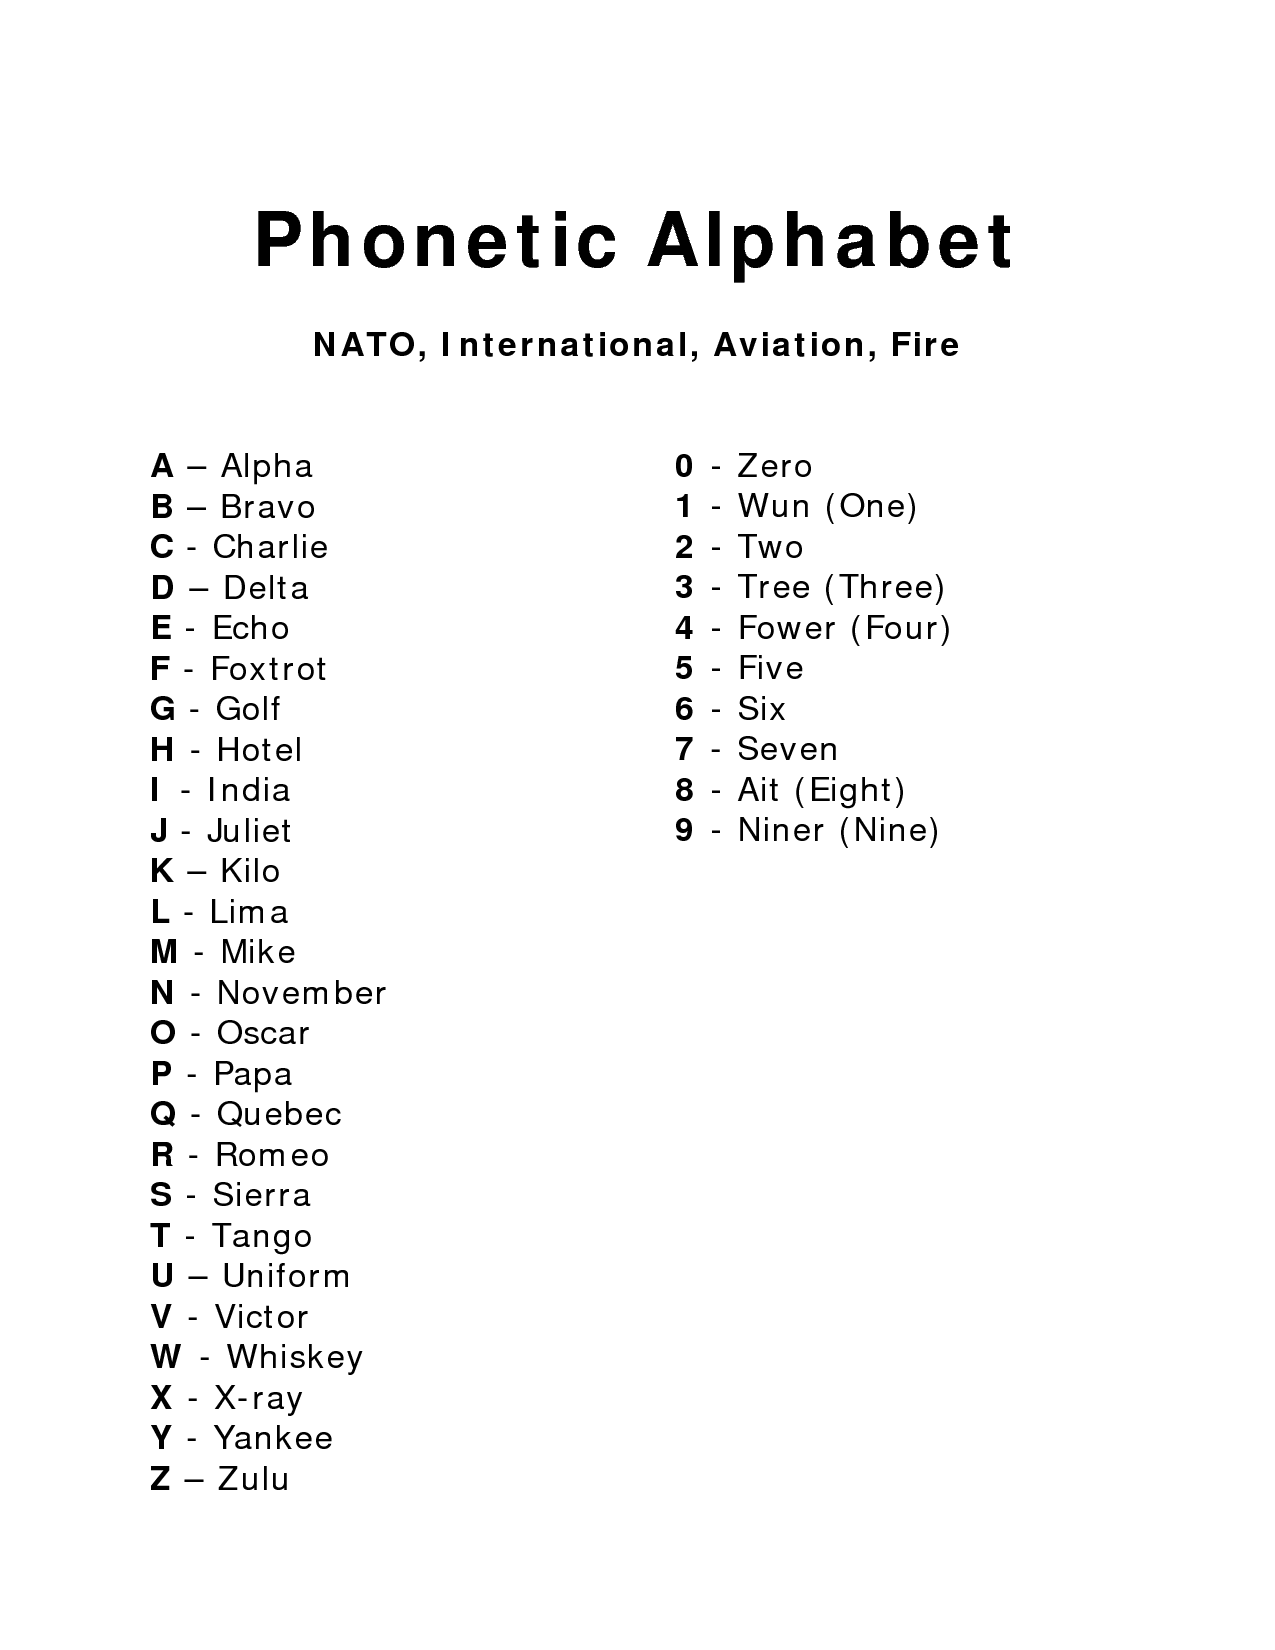 photograph relating to Printable Phonetic Alphabet titled Pin through 4khd upon Nato Phonetic Alphabet Pdf Phonetic